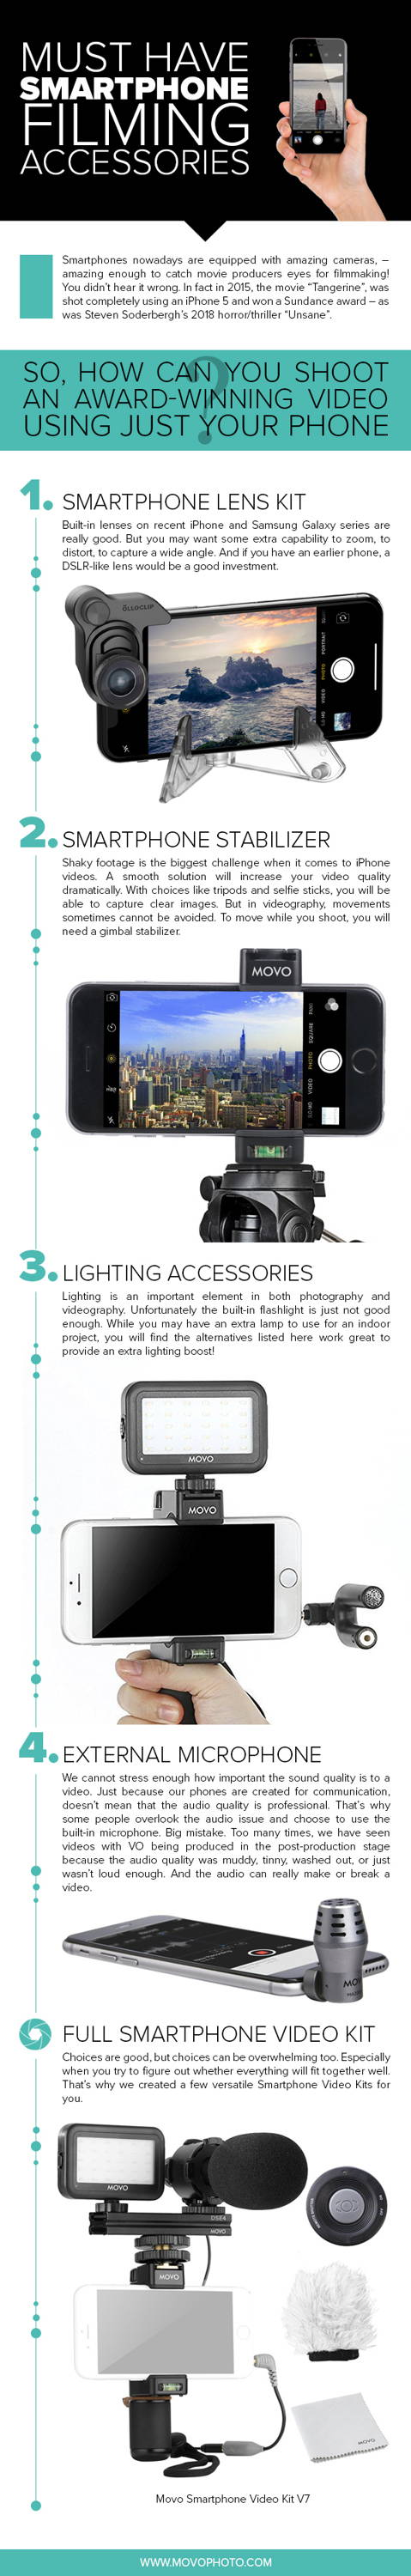 Must Have Smartphone Filming Accessories